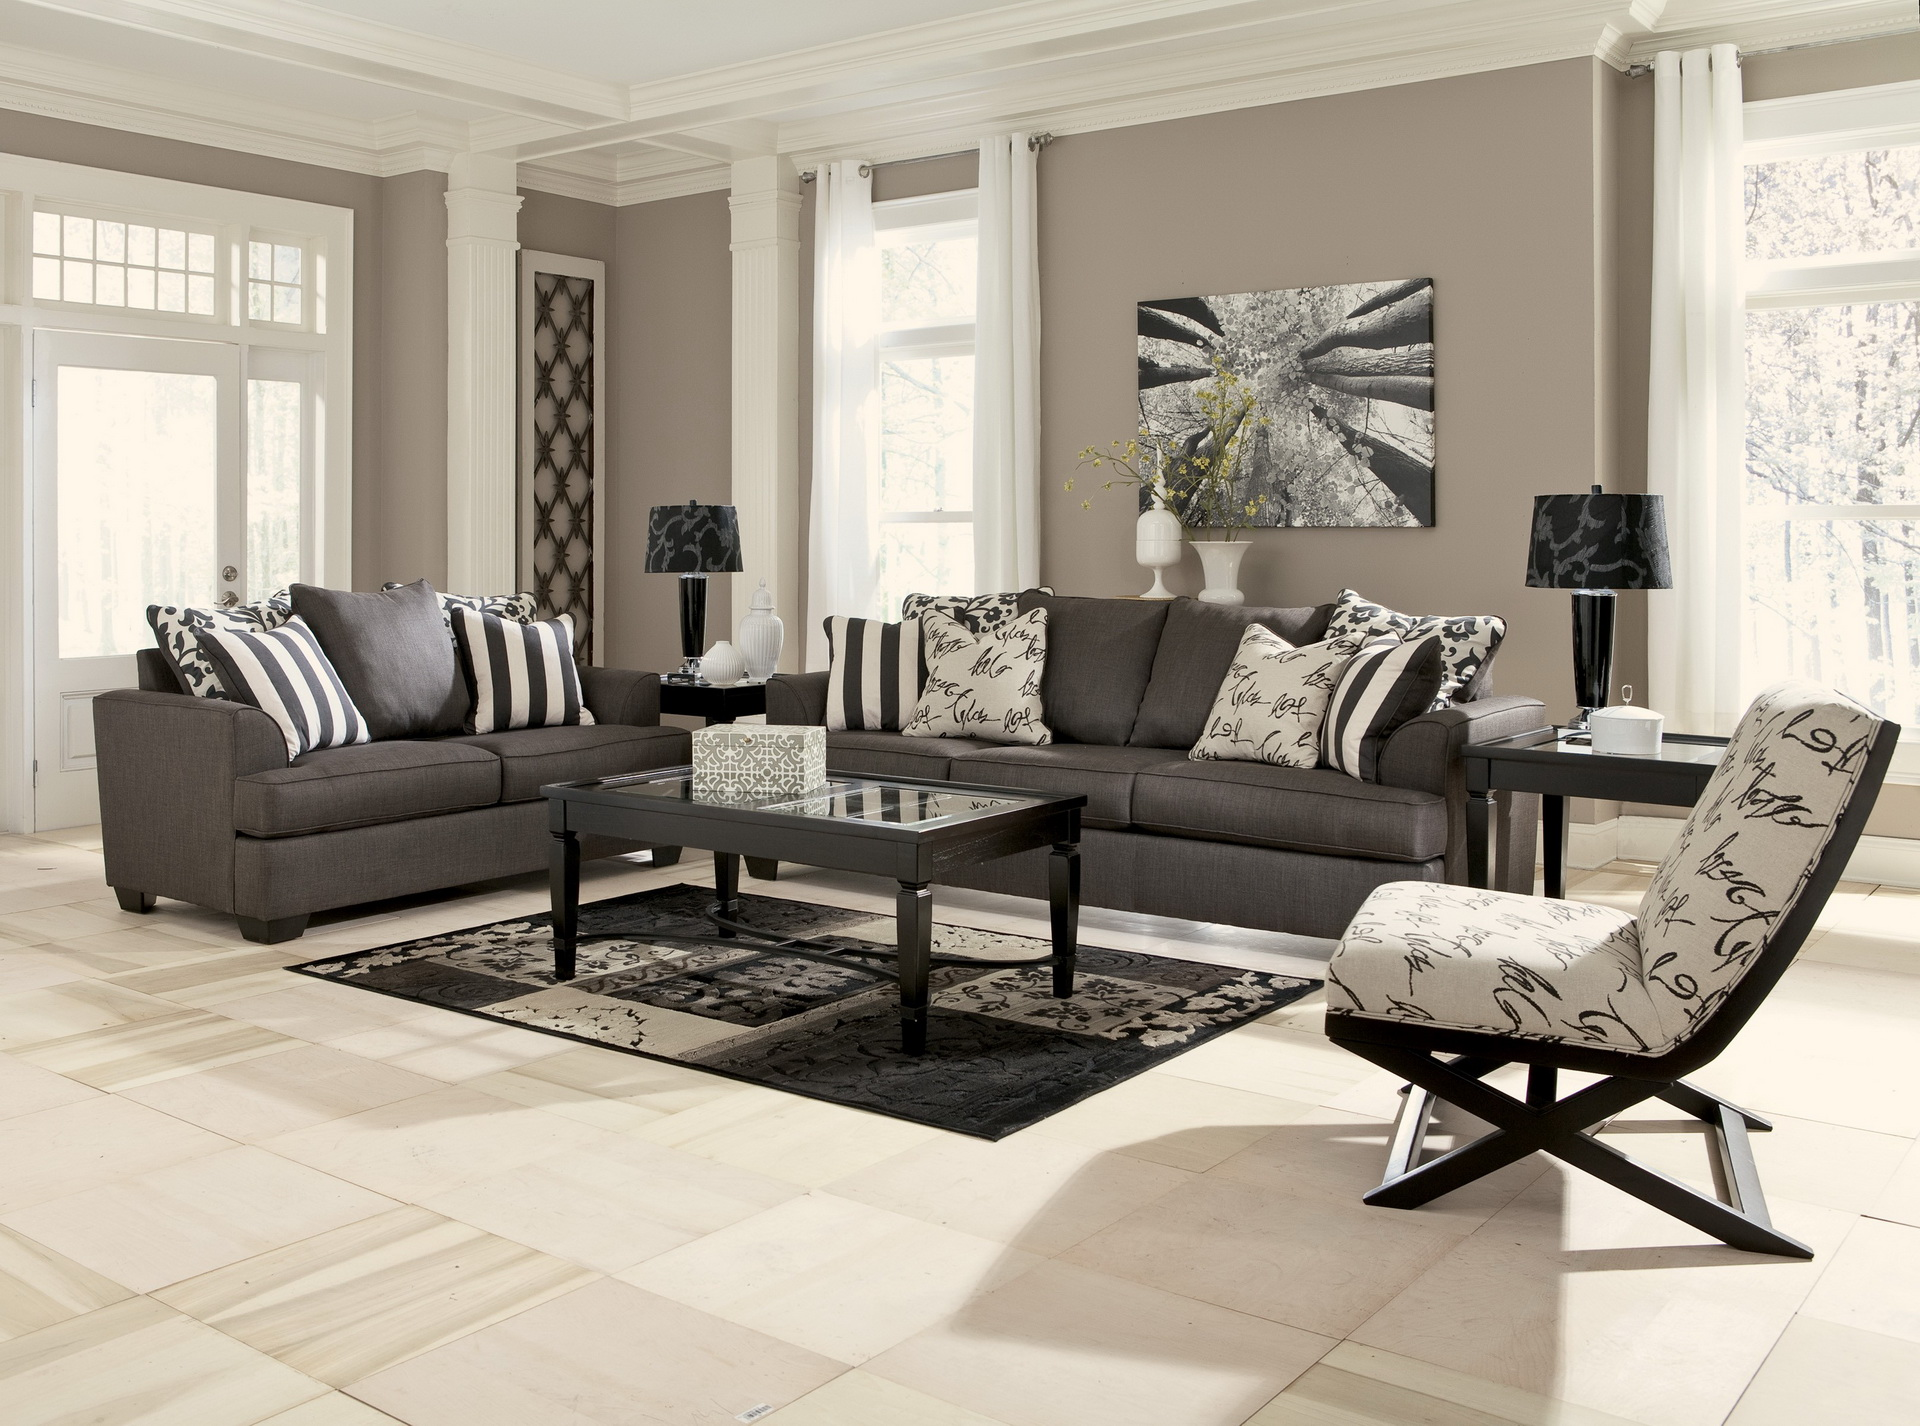 Accent chairs for living room 23 reasons to buy hawk haven for Occasional chairs for living room